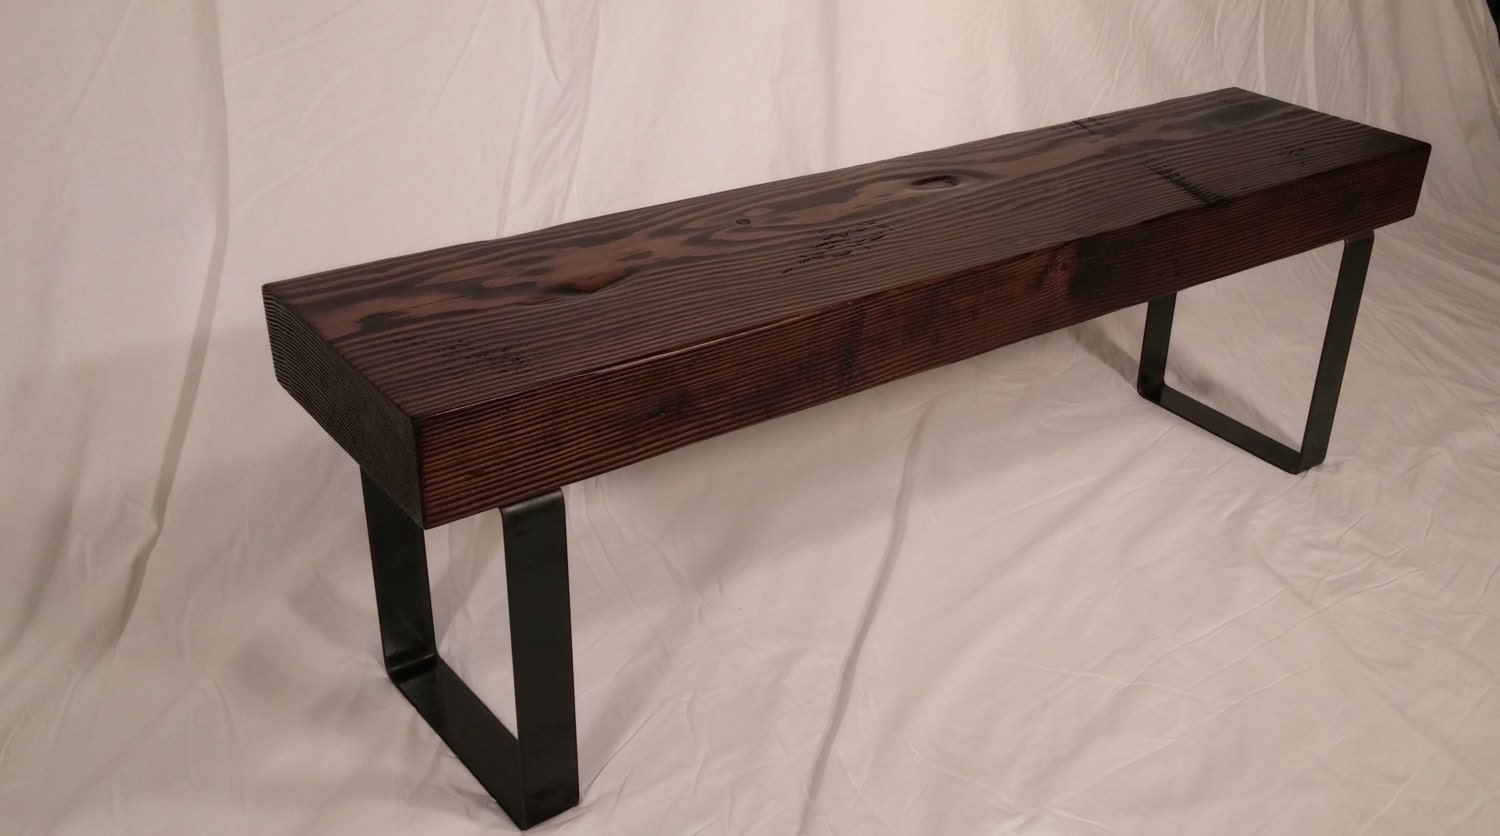 Rustic Industrial Entryway Bench Espresso